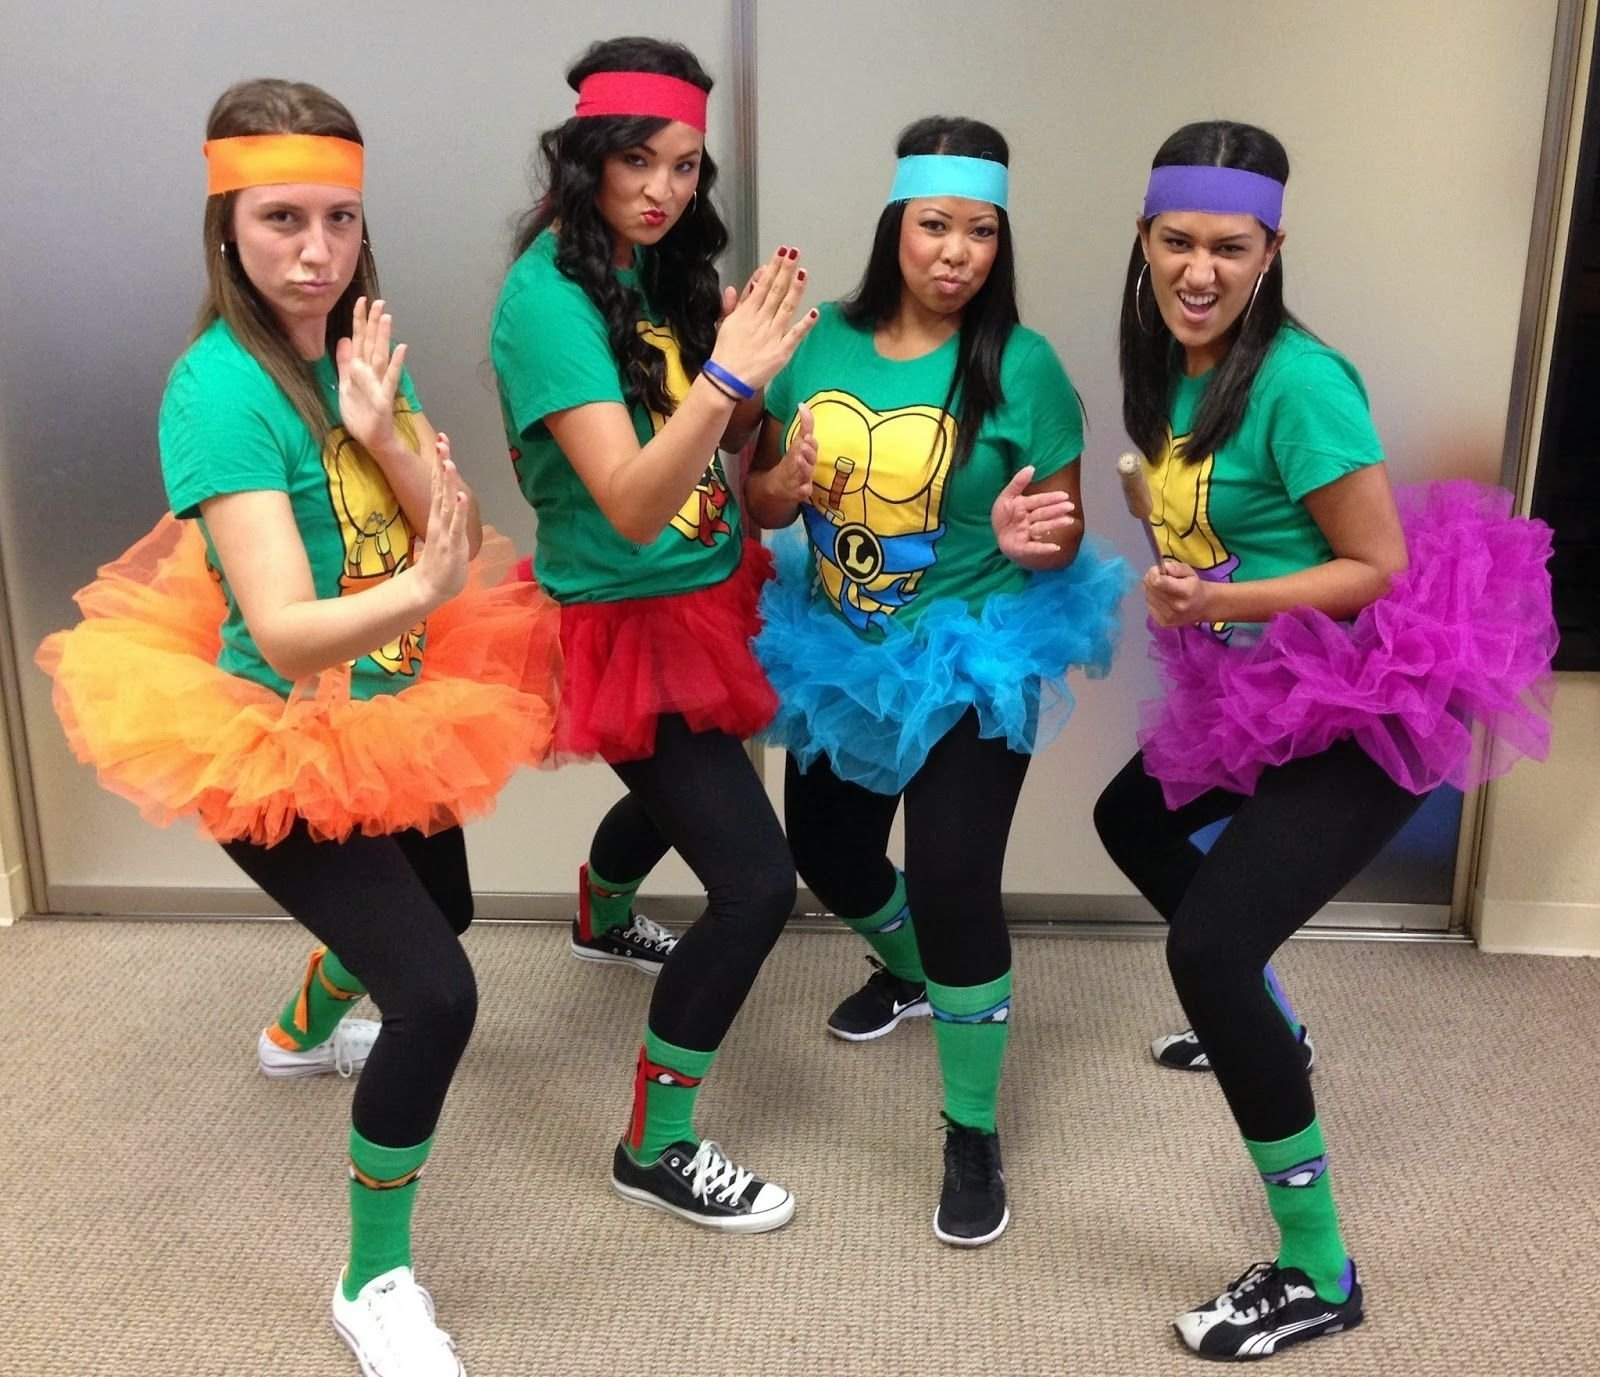 10 stylish diy teenage halloween costume ideas 26 90s group halloween costumes you and your squad